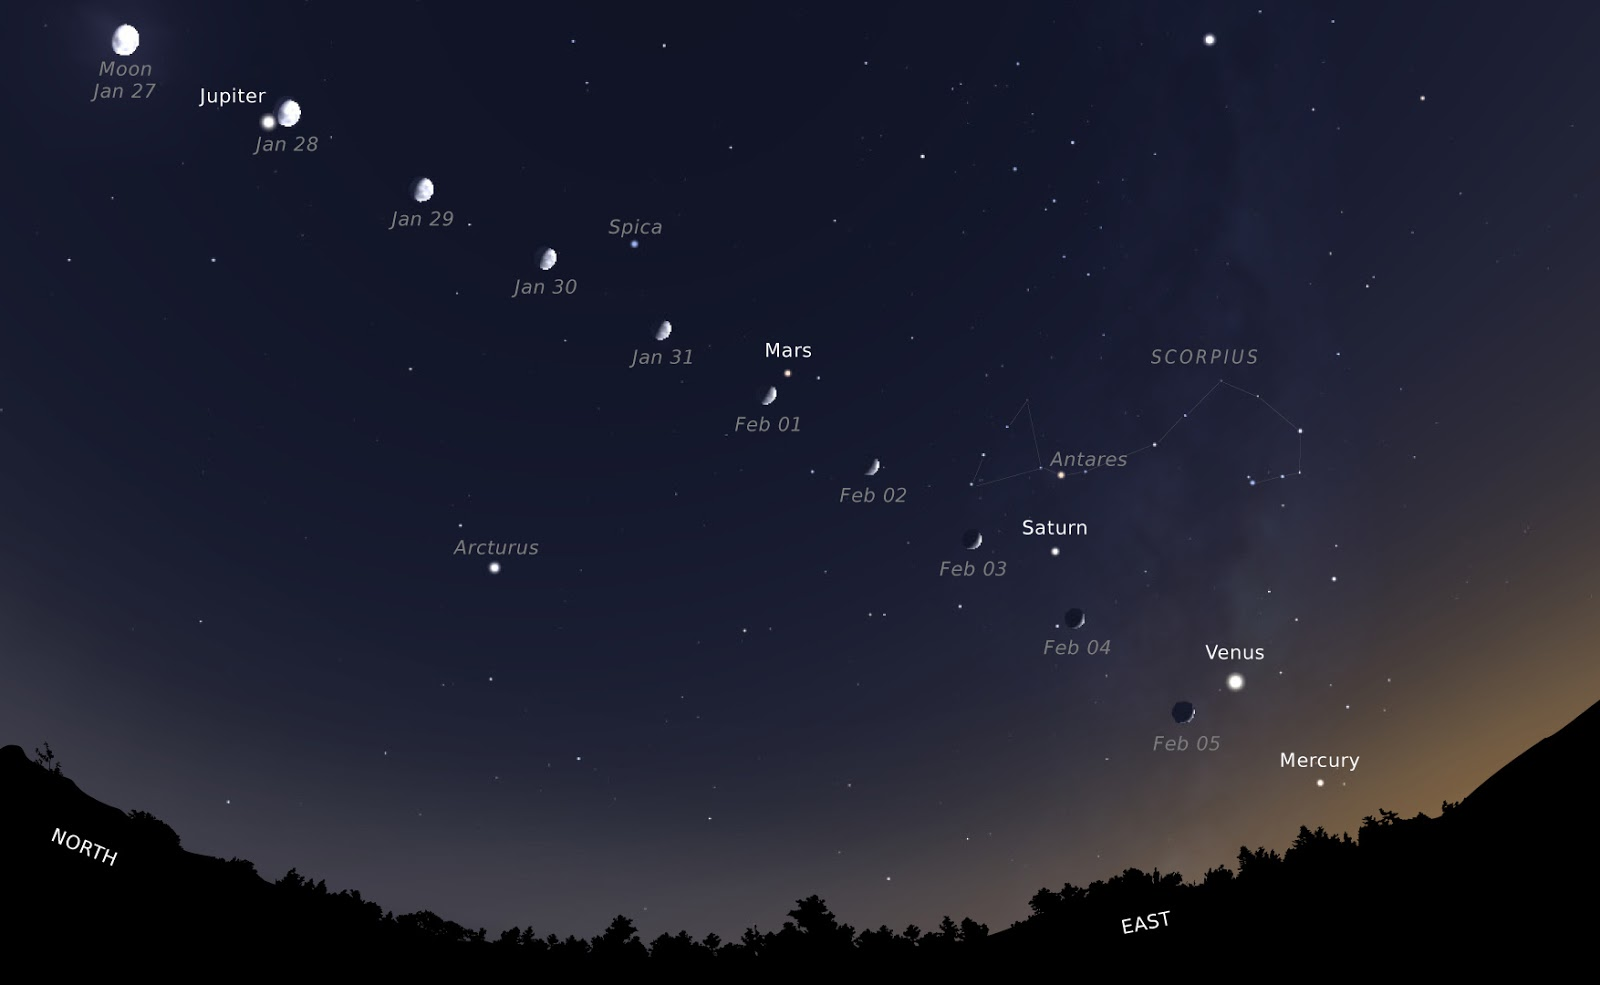 Five Planets Visible to the Naked Eye in Rare Astronomical